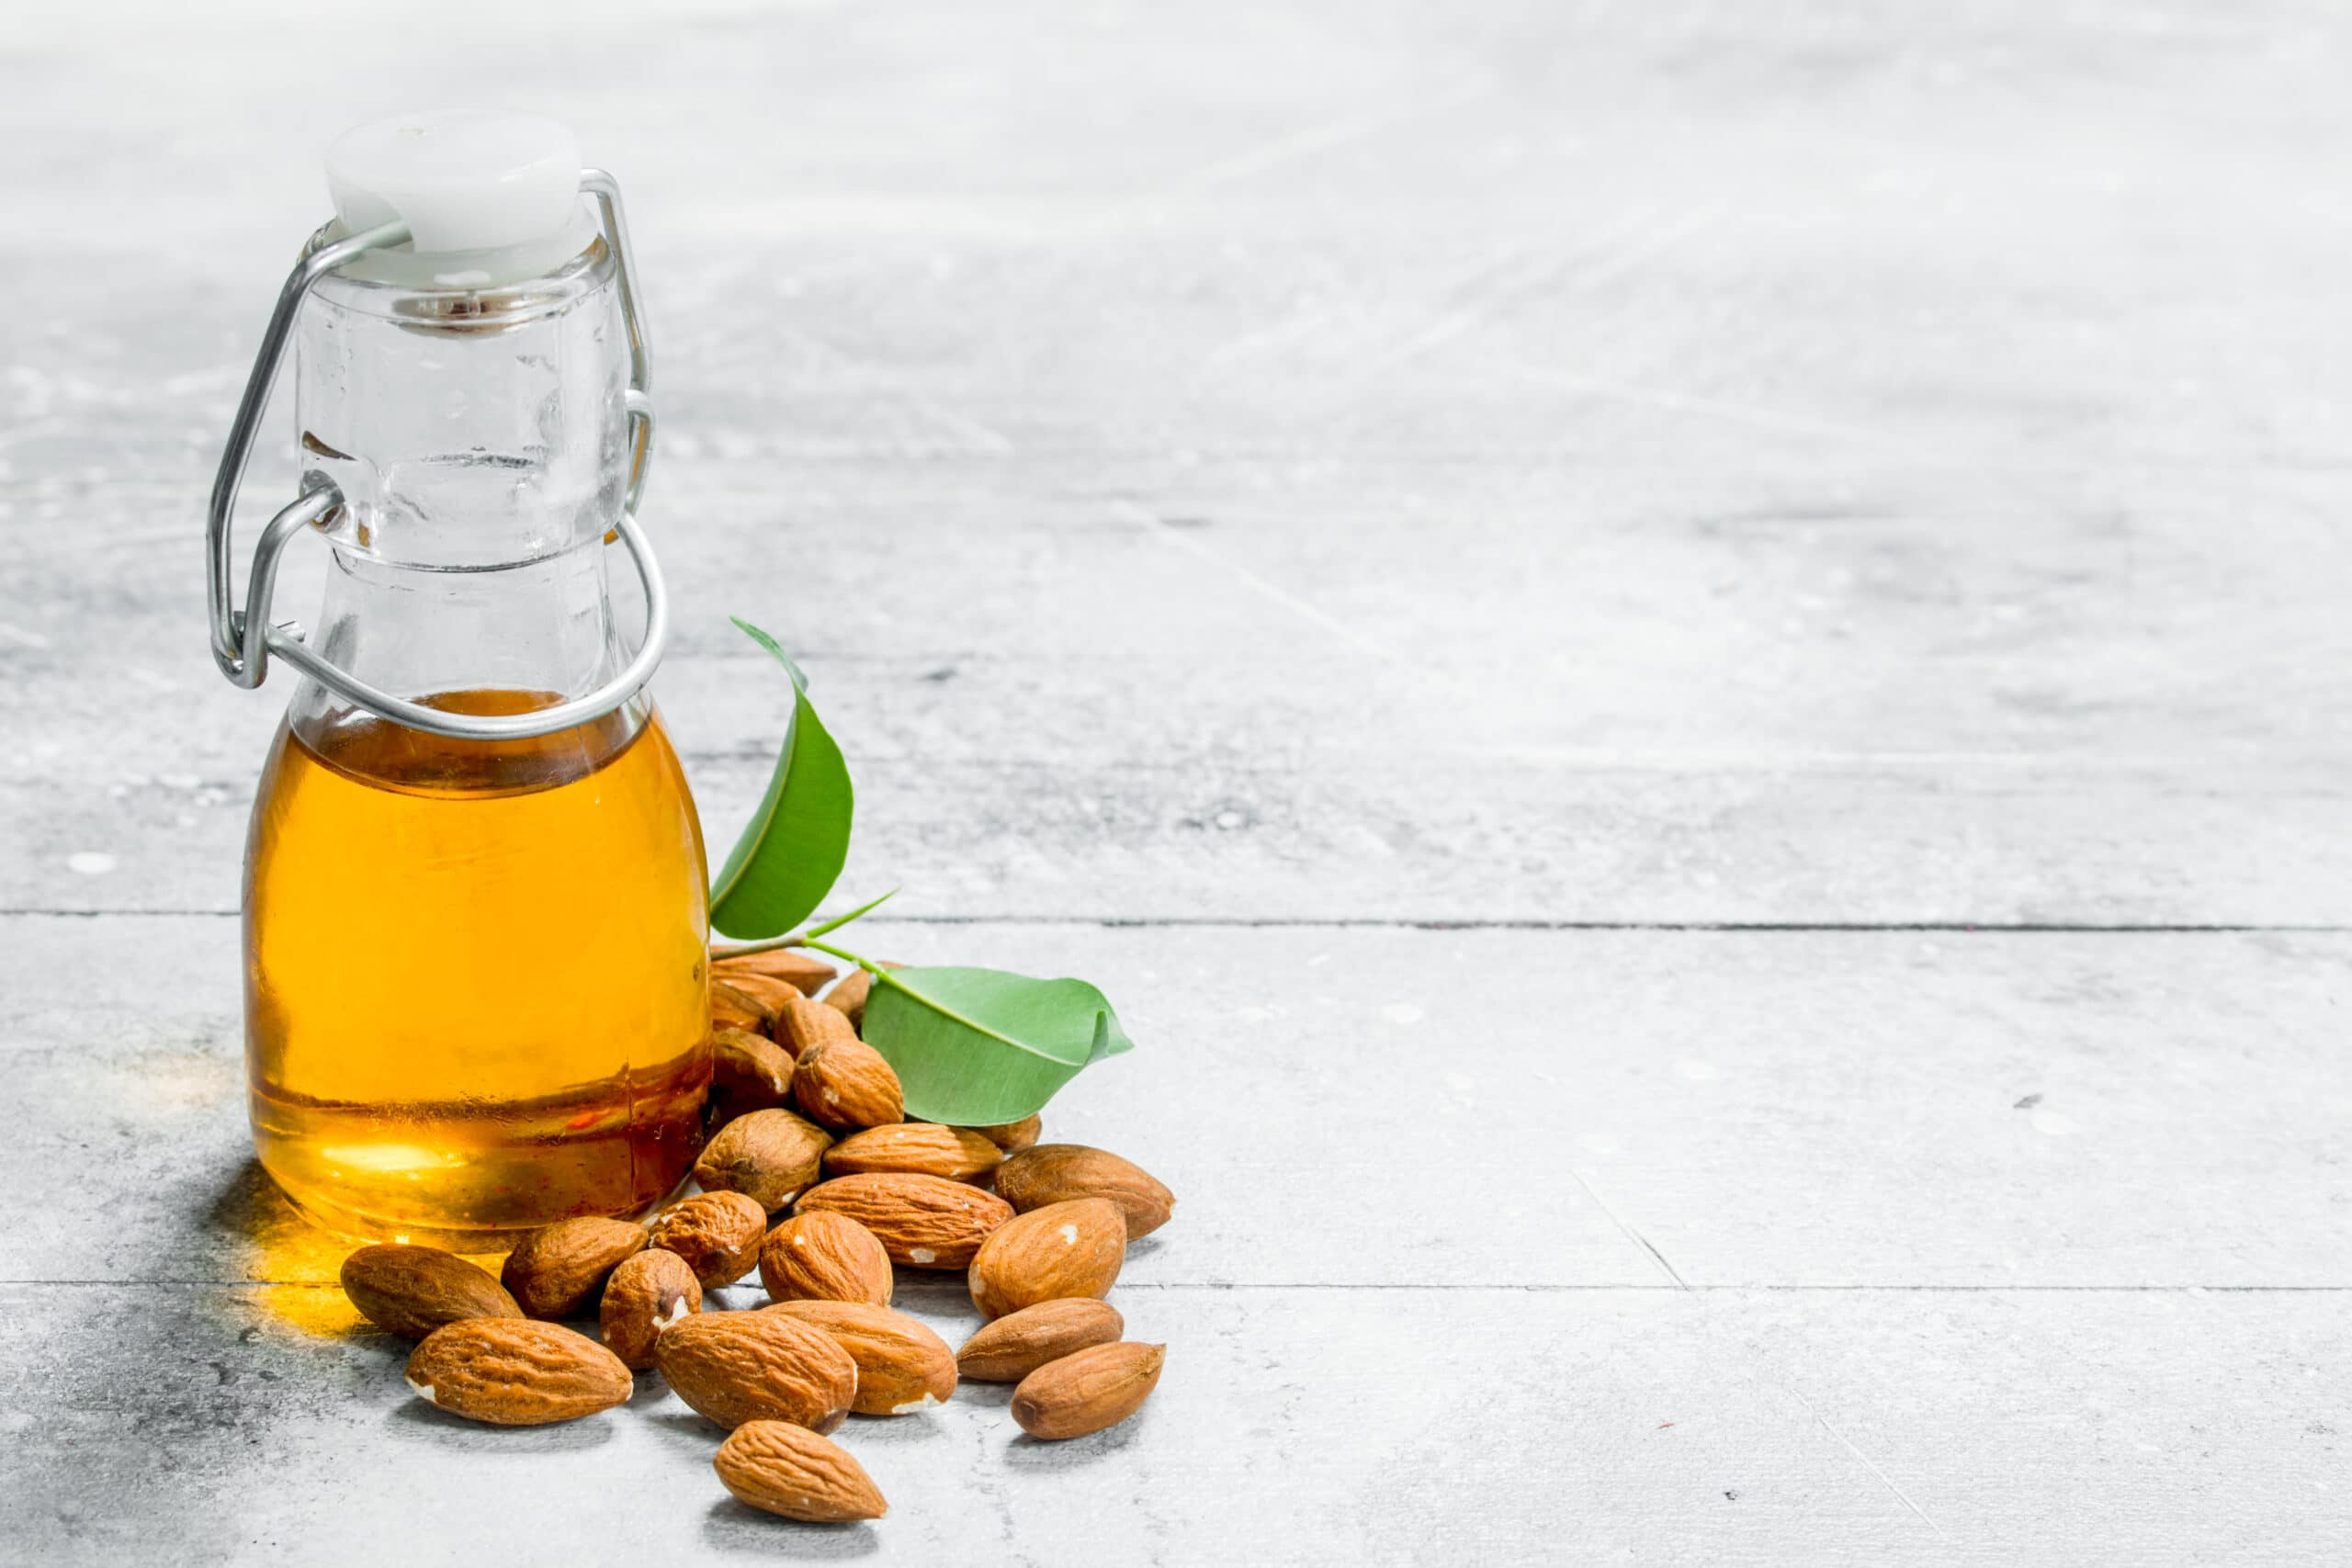 Almond oil in a glass bottle . On a rustic background.